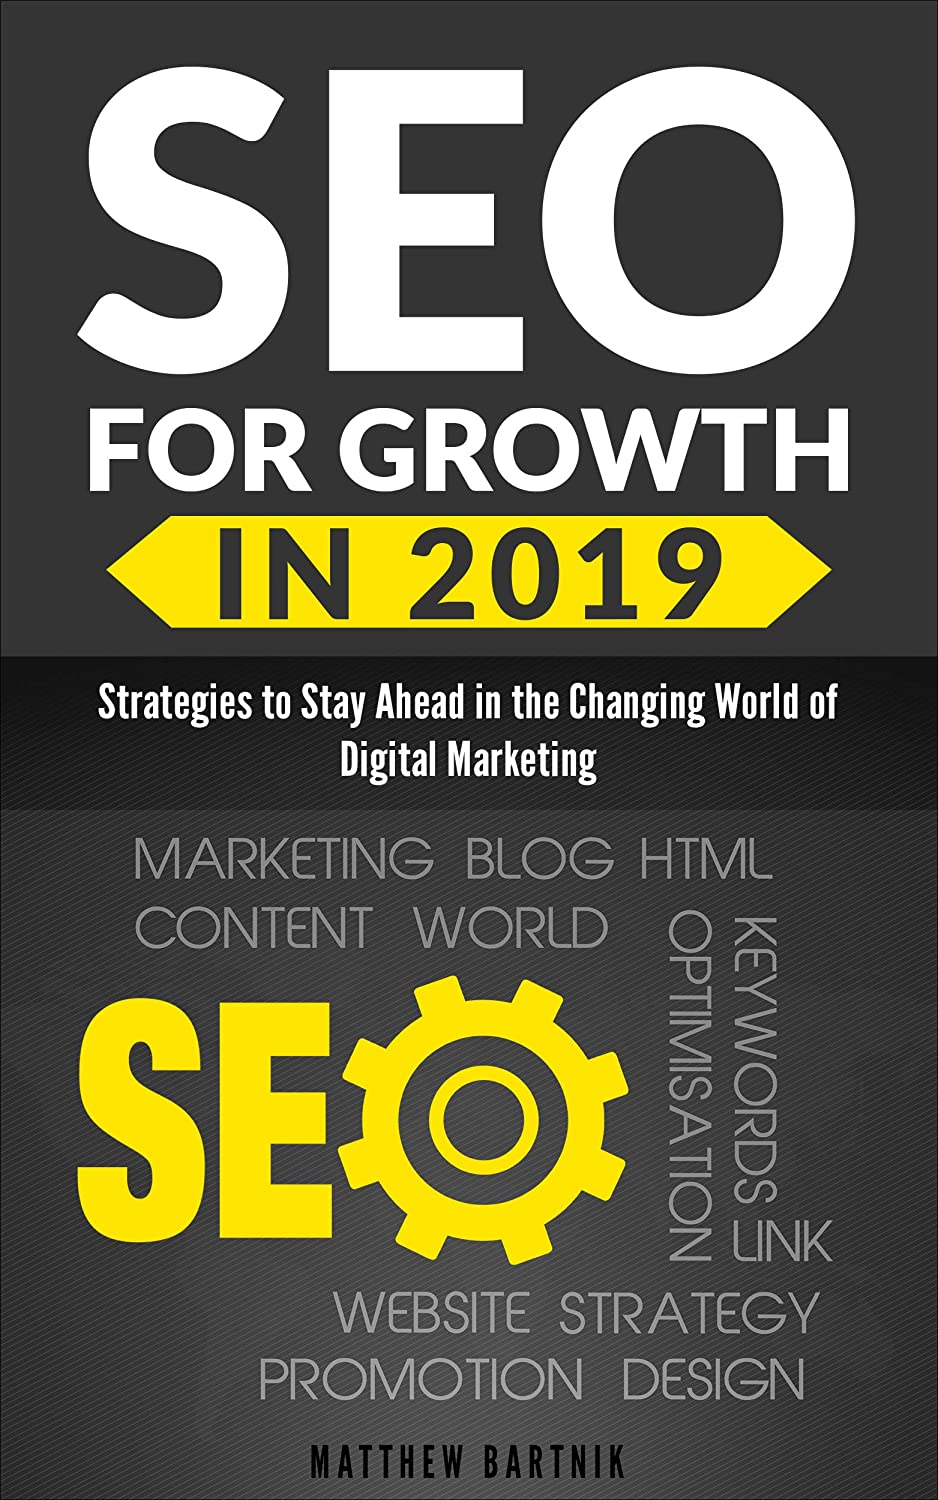 SEO for Growth in 2019: Strategies to Stay Ahead in the